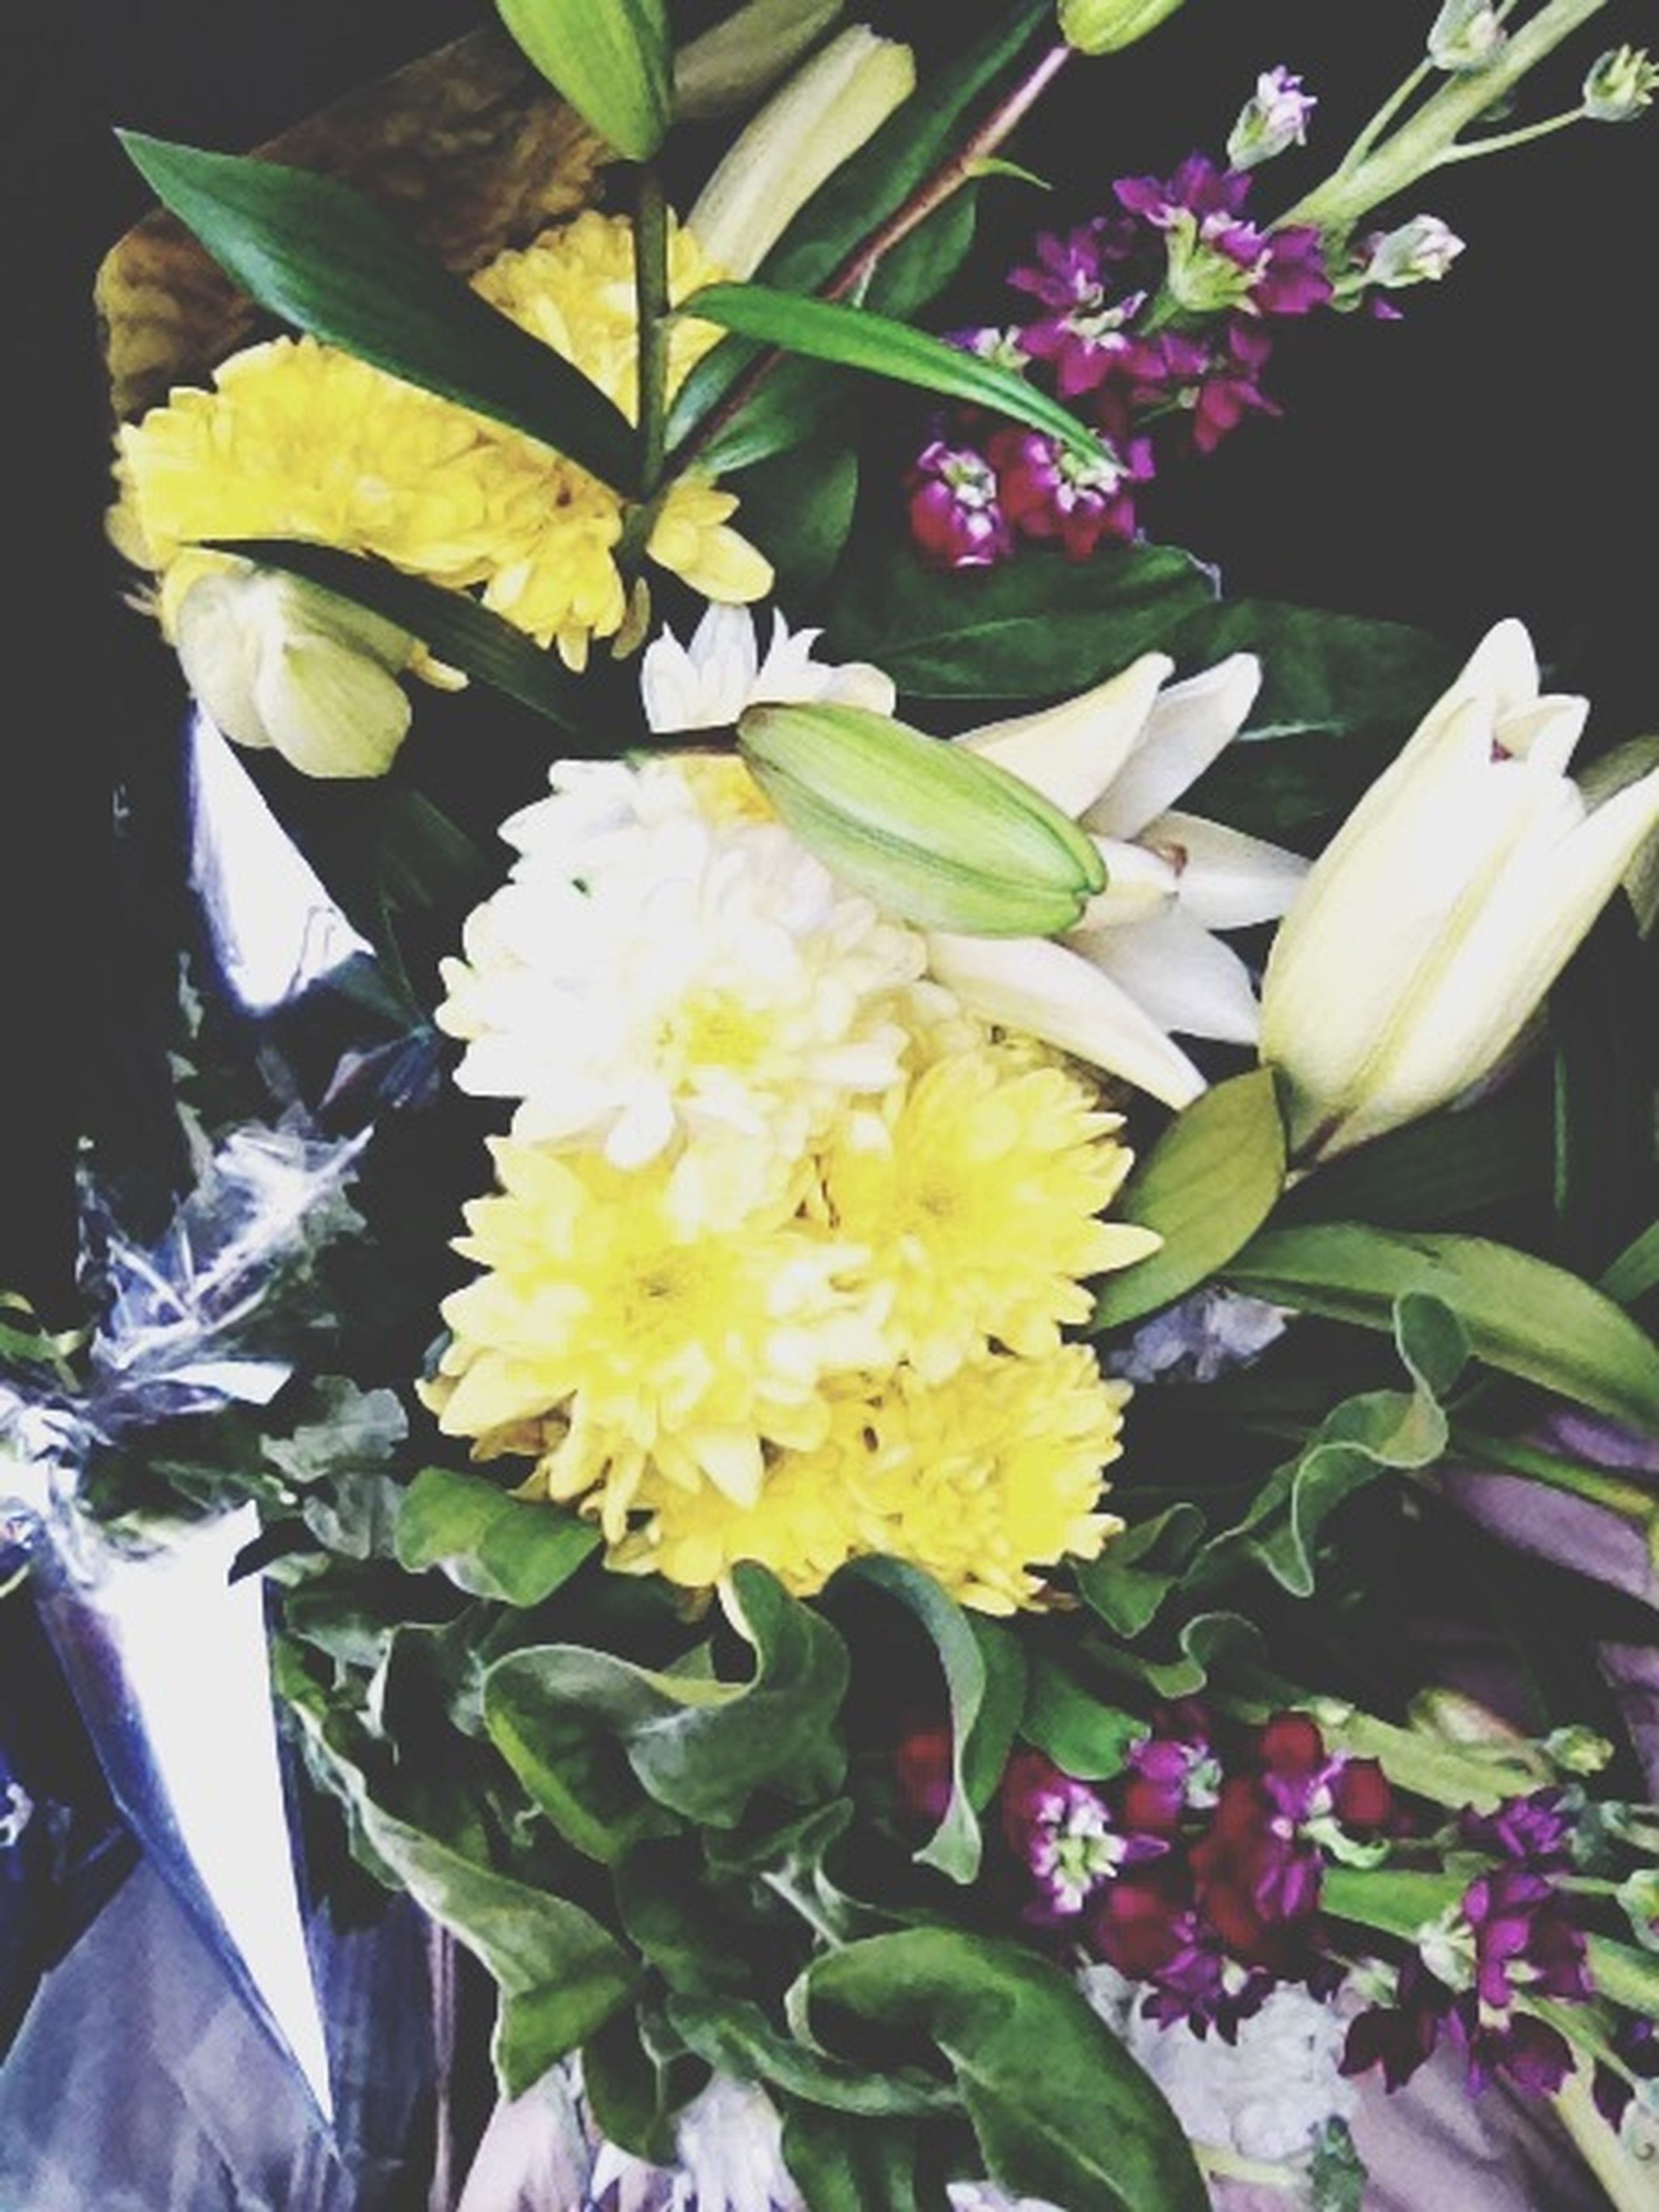 flower, freshness, petal, flower head, fragility, growth, beauty in nature, close-up, plant, leaf, blooming, nature, indoors, yellow, bunch of flowers, high angle view, in bloom, no people, white color, blossom